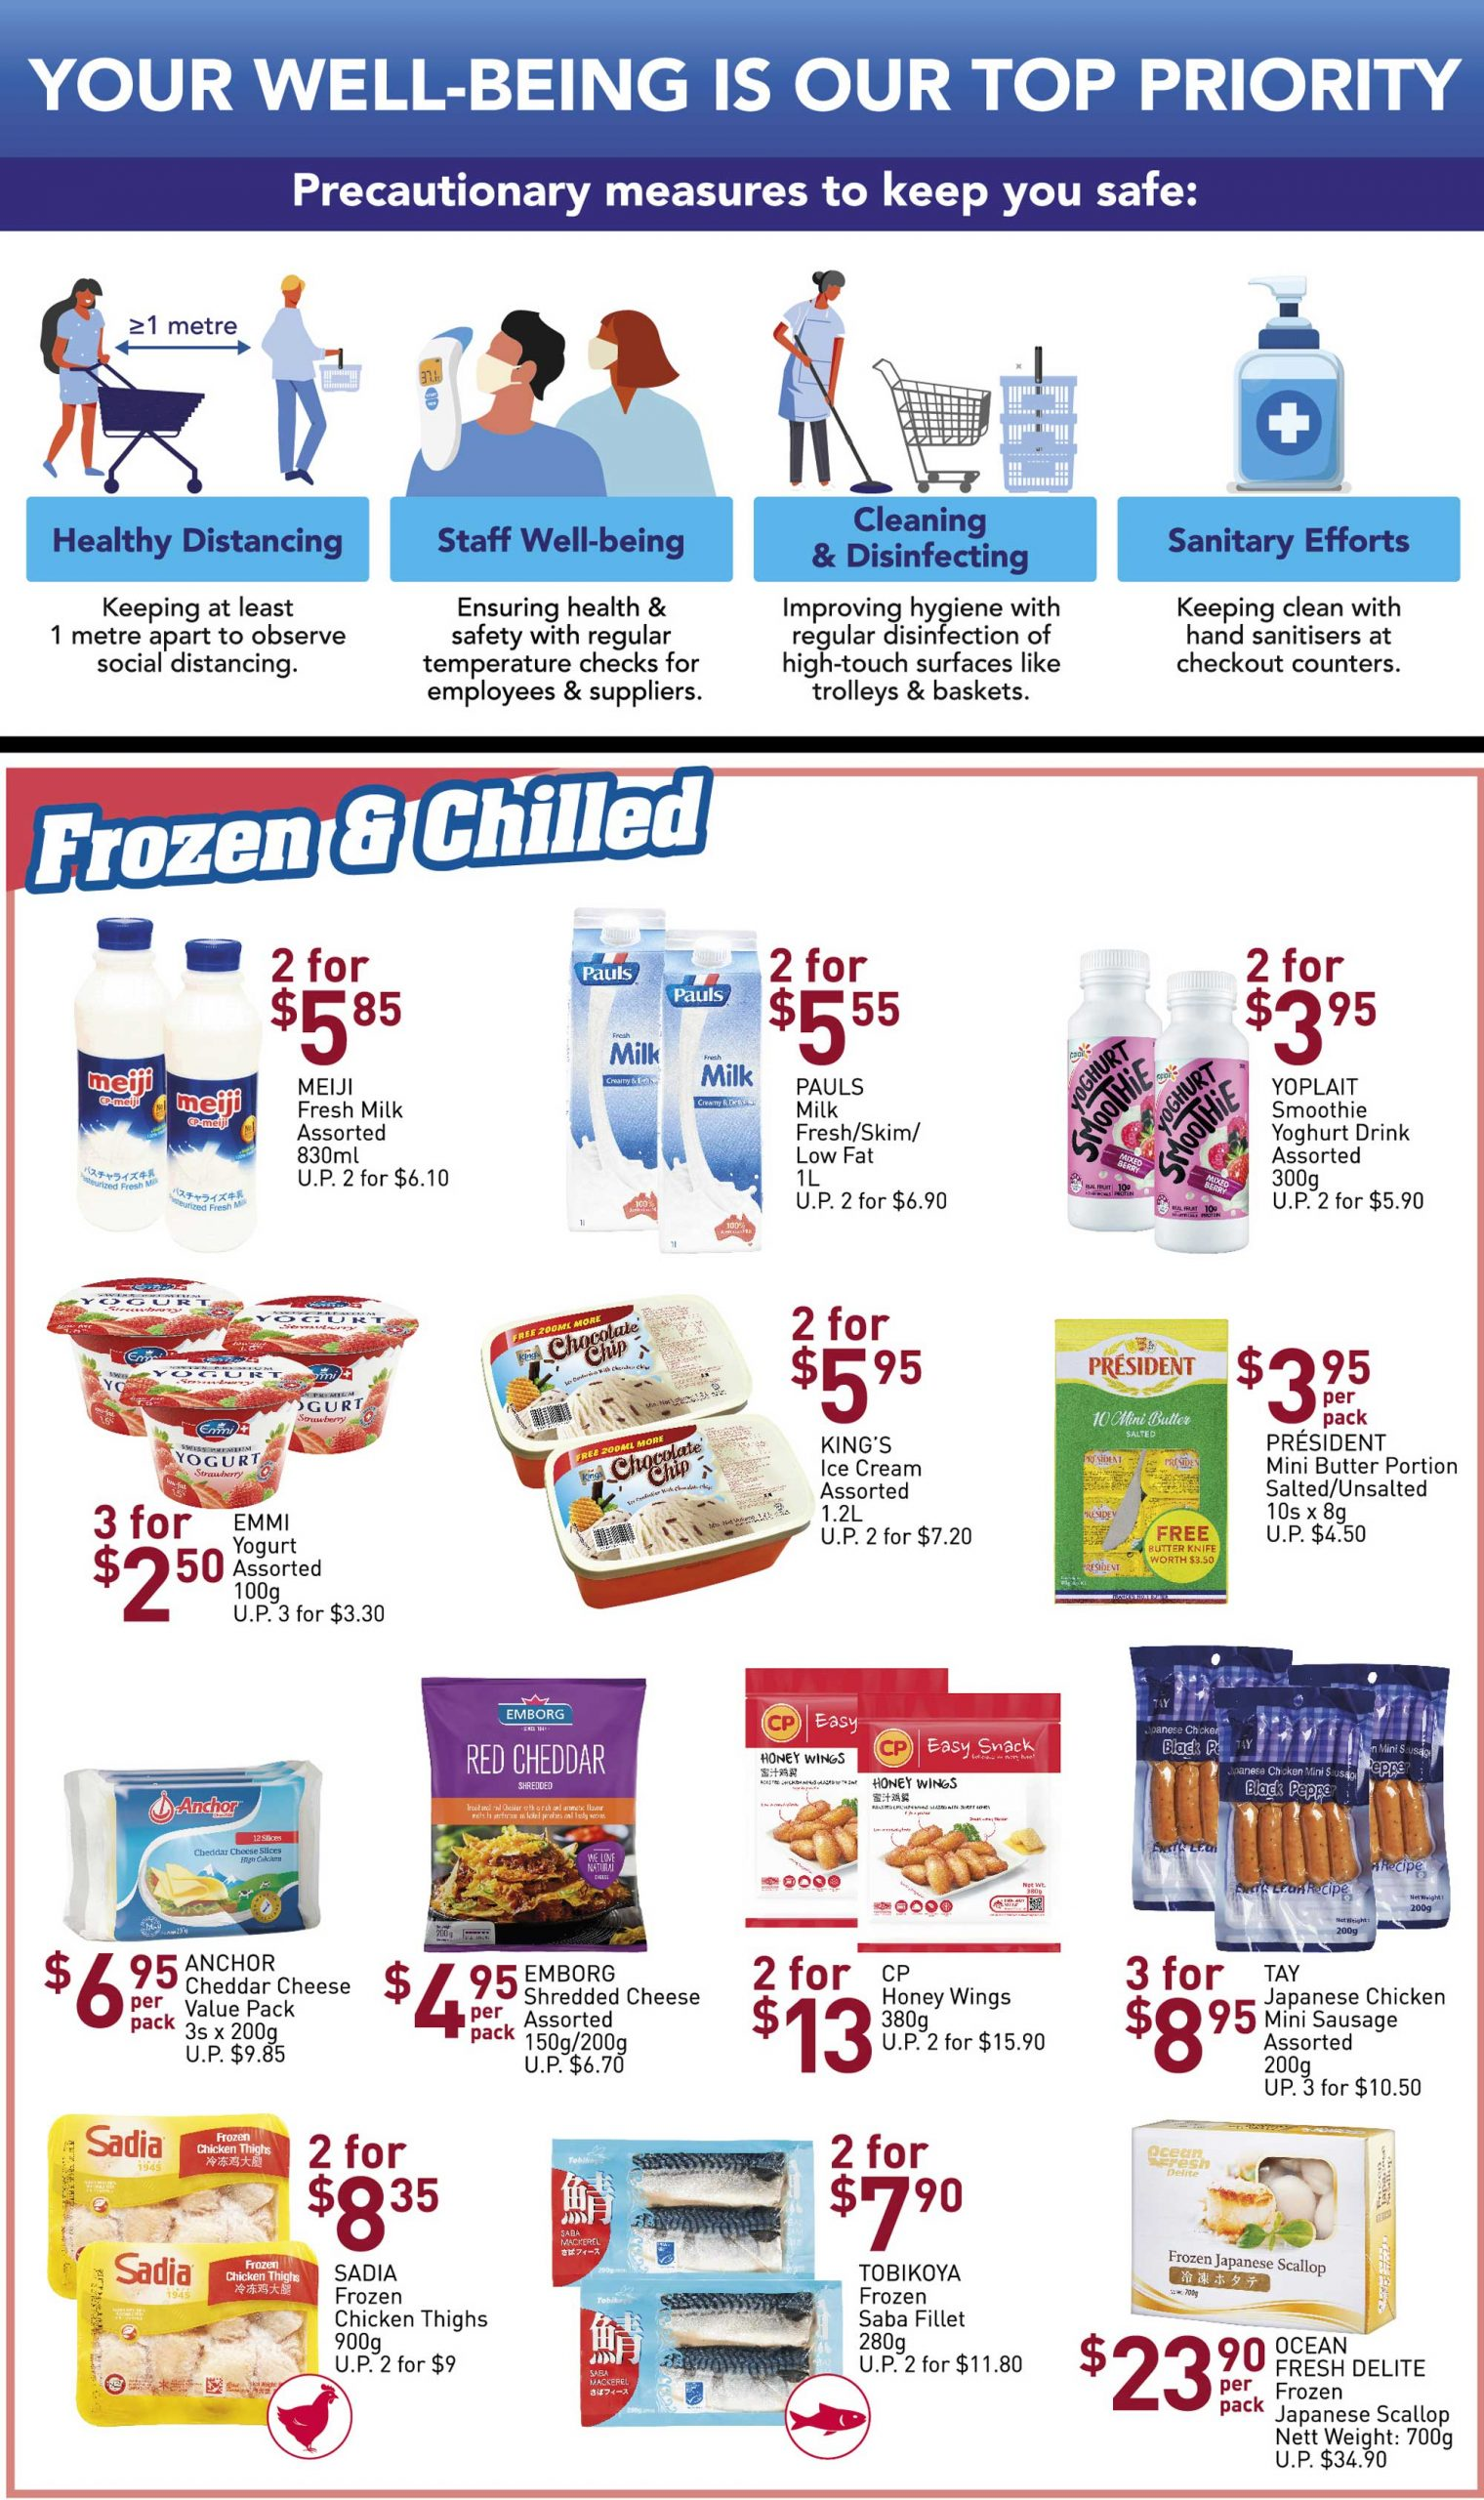 NTUC FairPrice SG Your Weekly Saver Promotion 26 Mar - 1 Apr 2020 | Why Not Deals 10 & Promotions